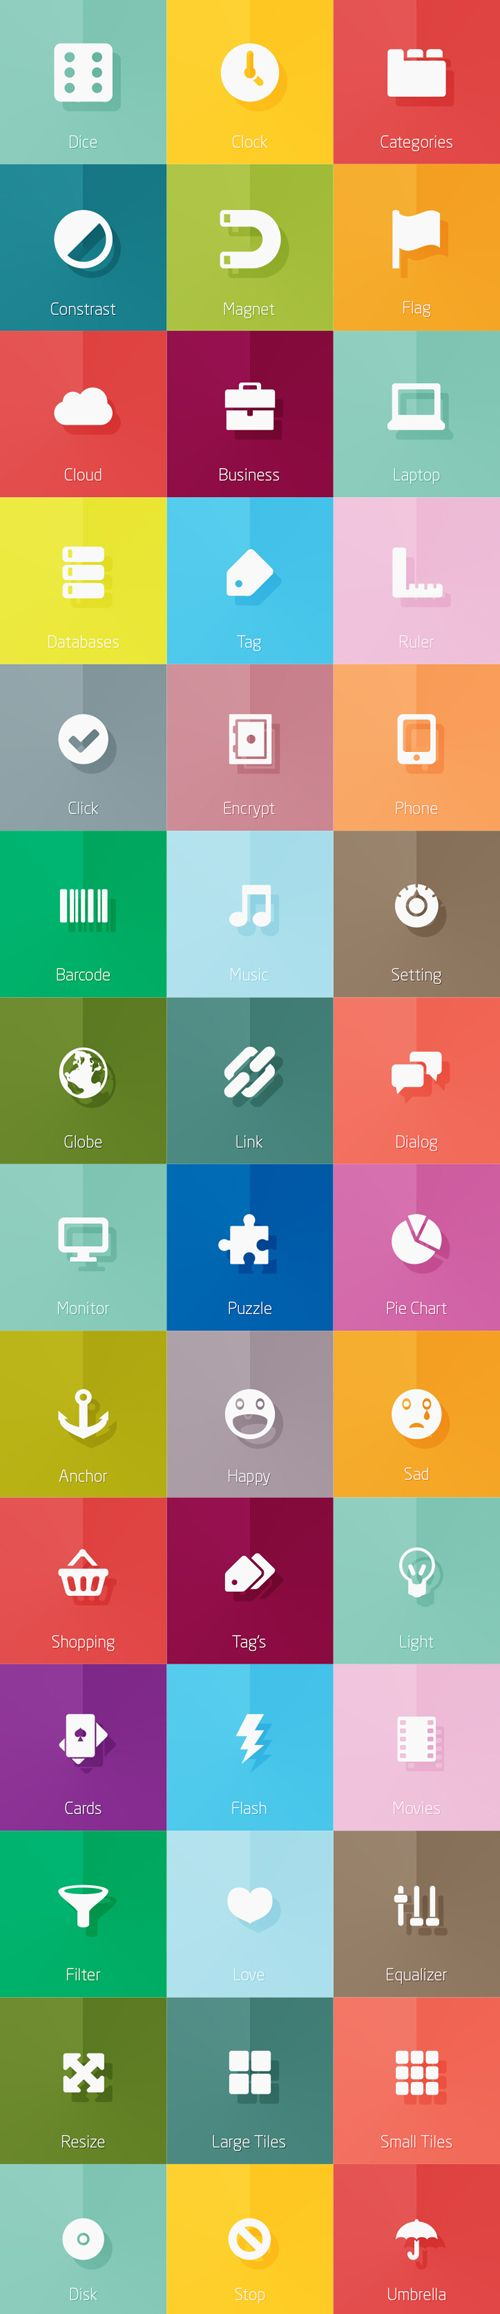 Best 25 app icon design ideas on pinterest app icon for Tile layout app